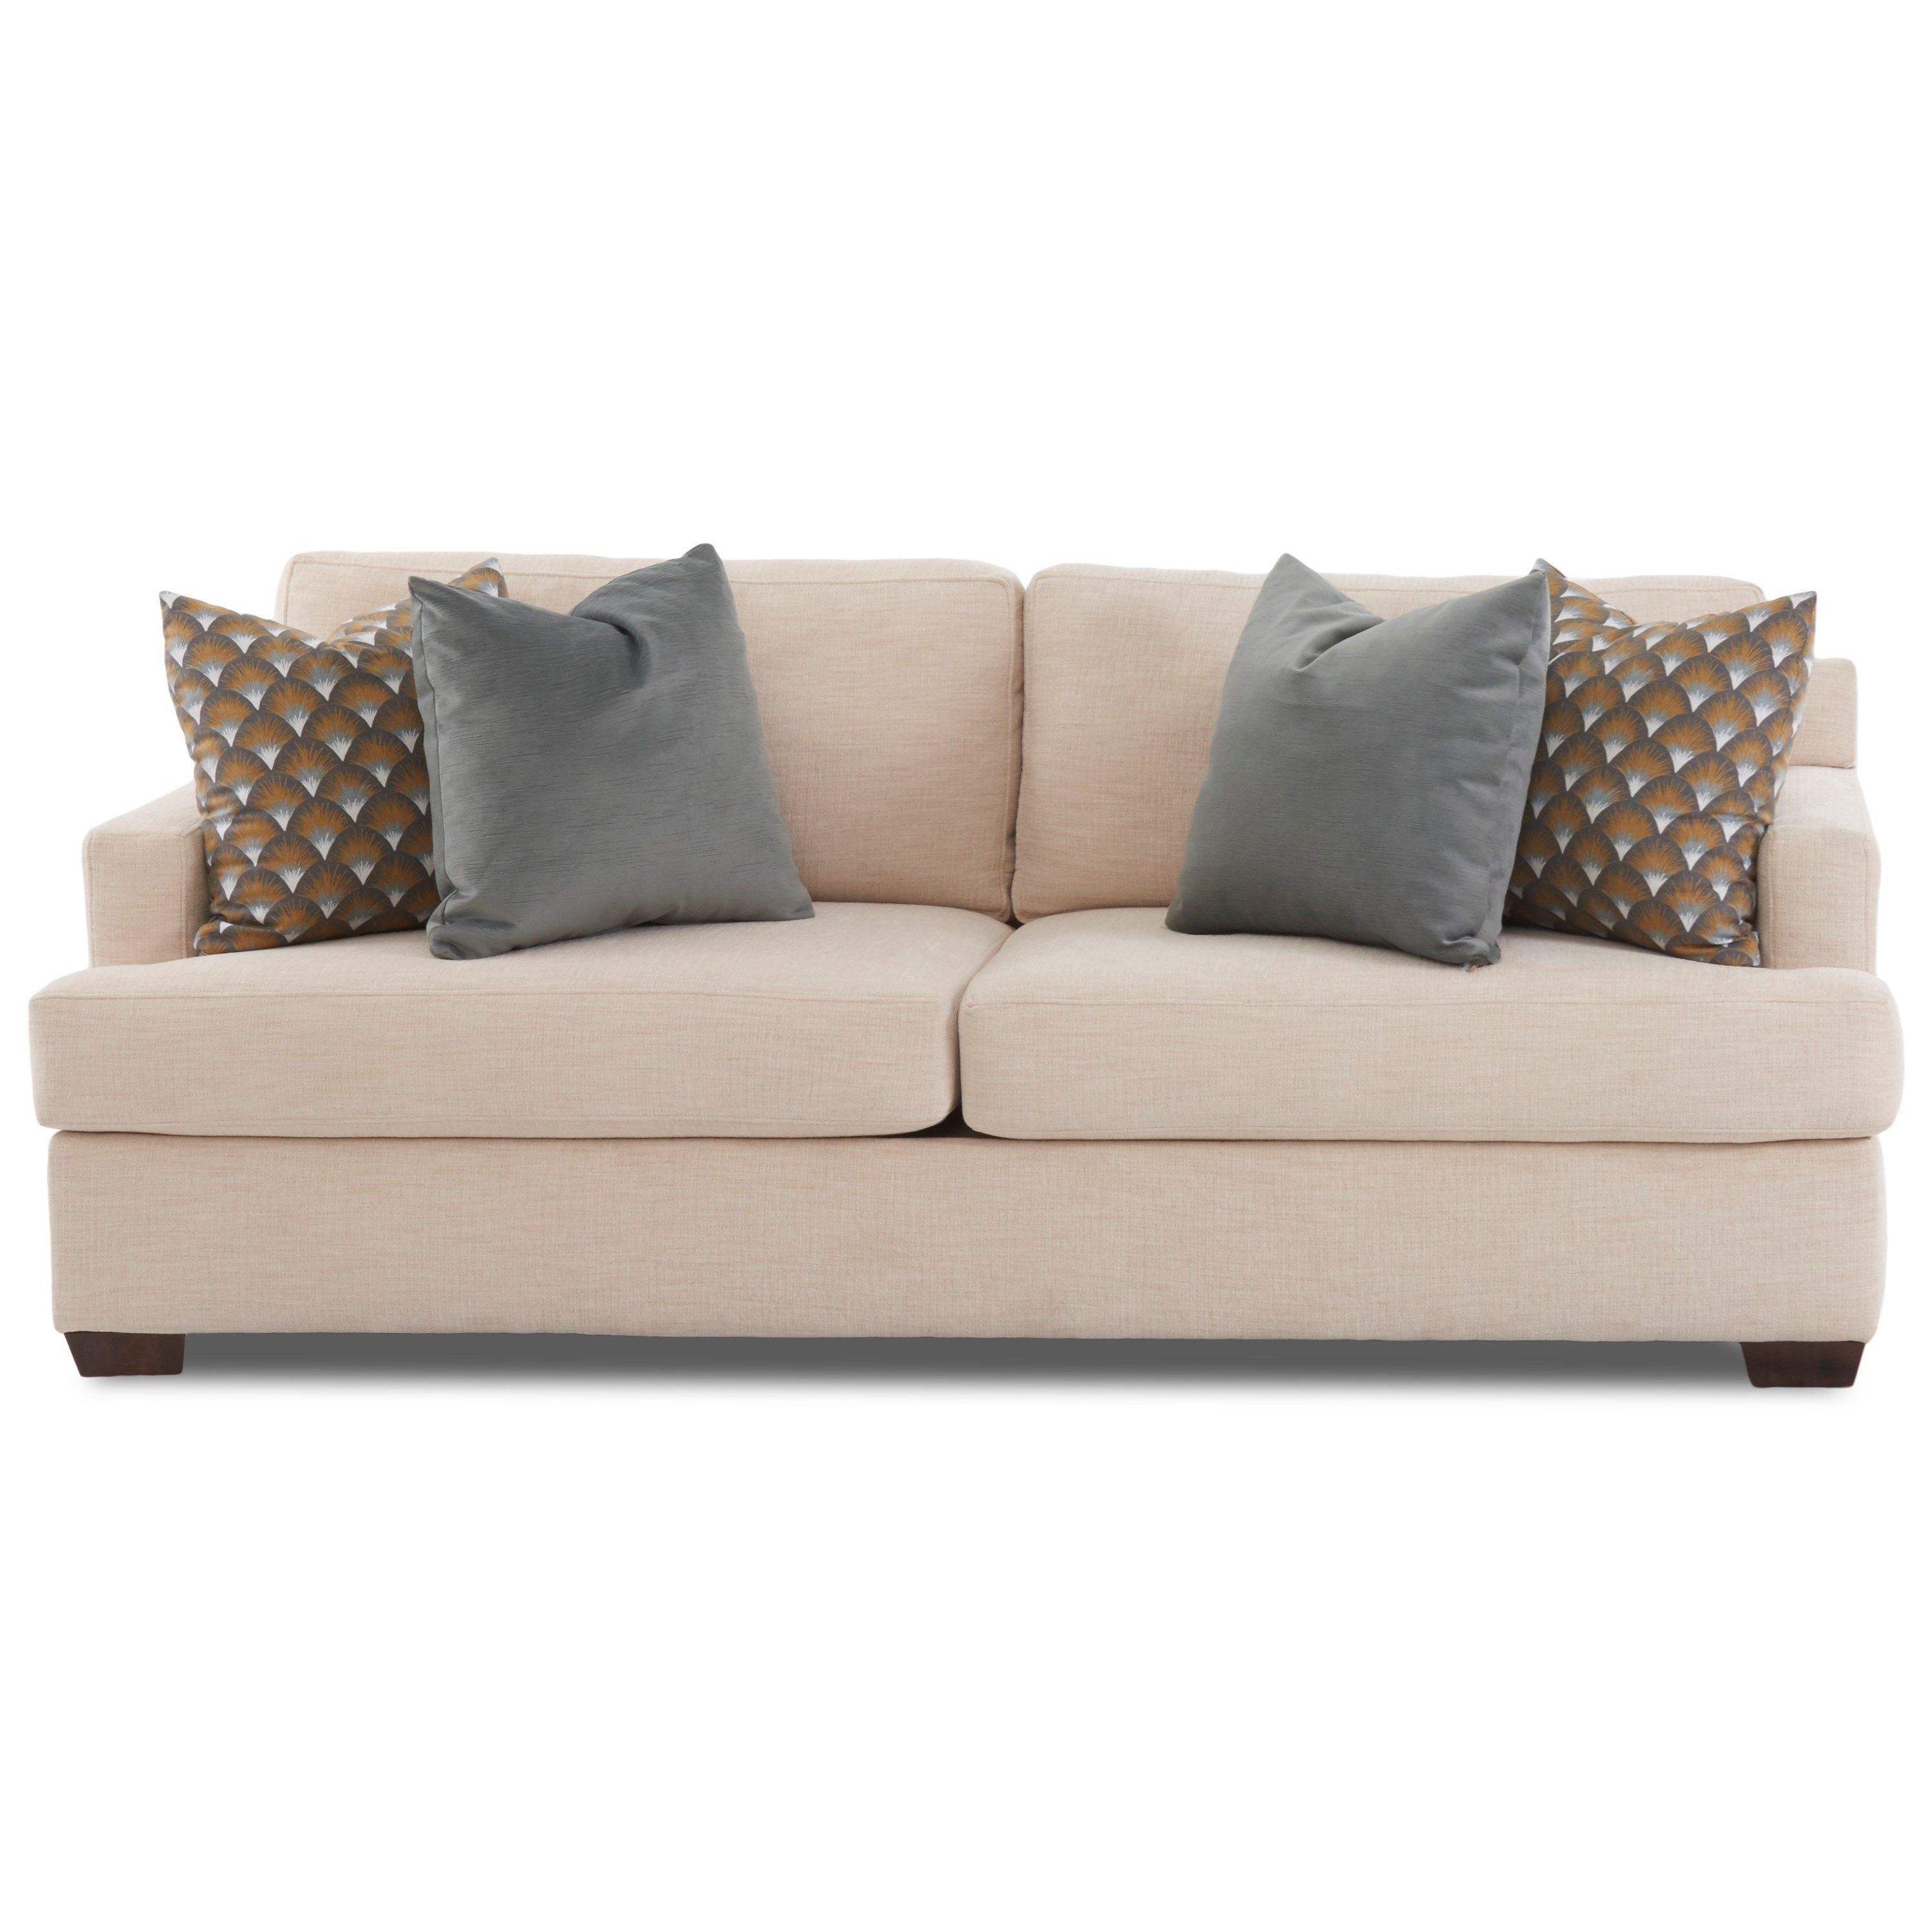 Contemporary 2-Seat Sofa with Innerspring Sleeper Mattress